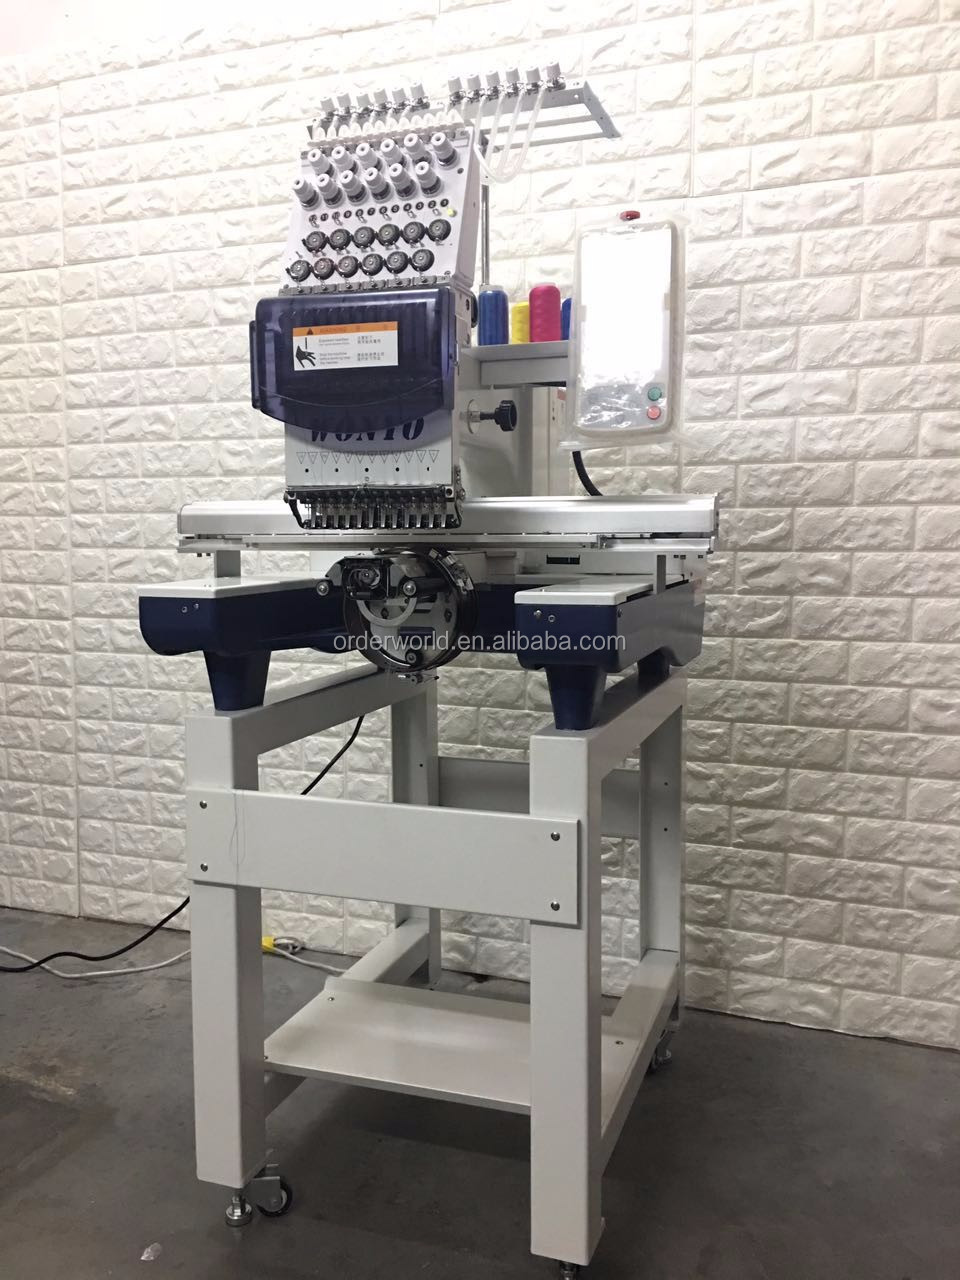 High Quality Brother Type smalll Home Computerized Embroidery Machine for Sale